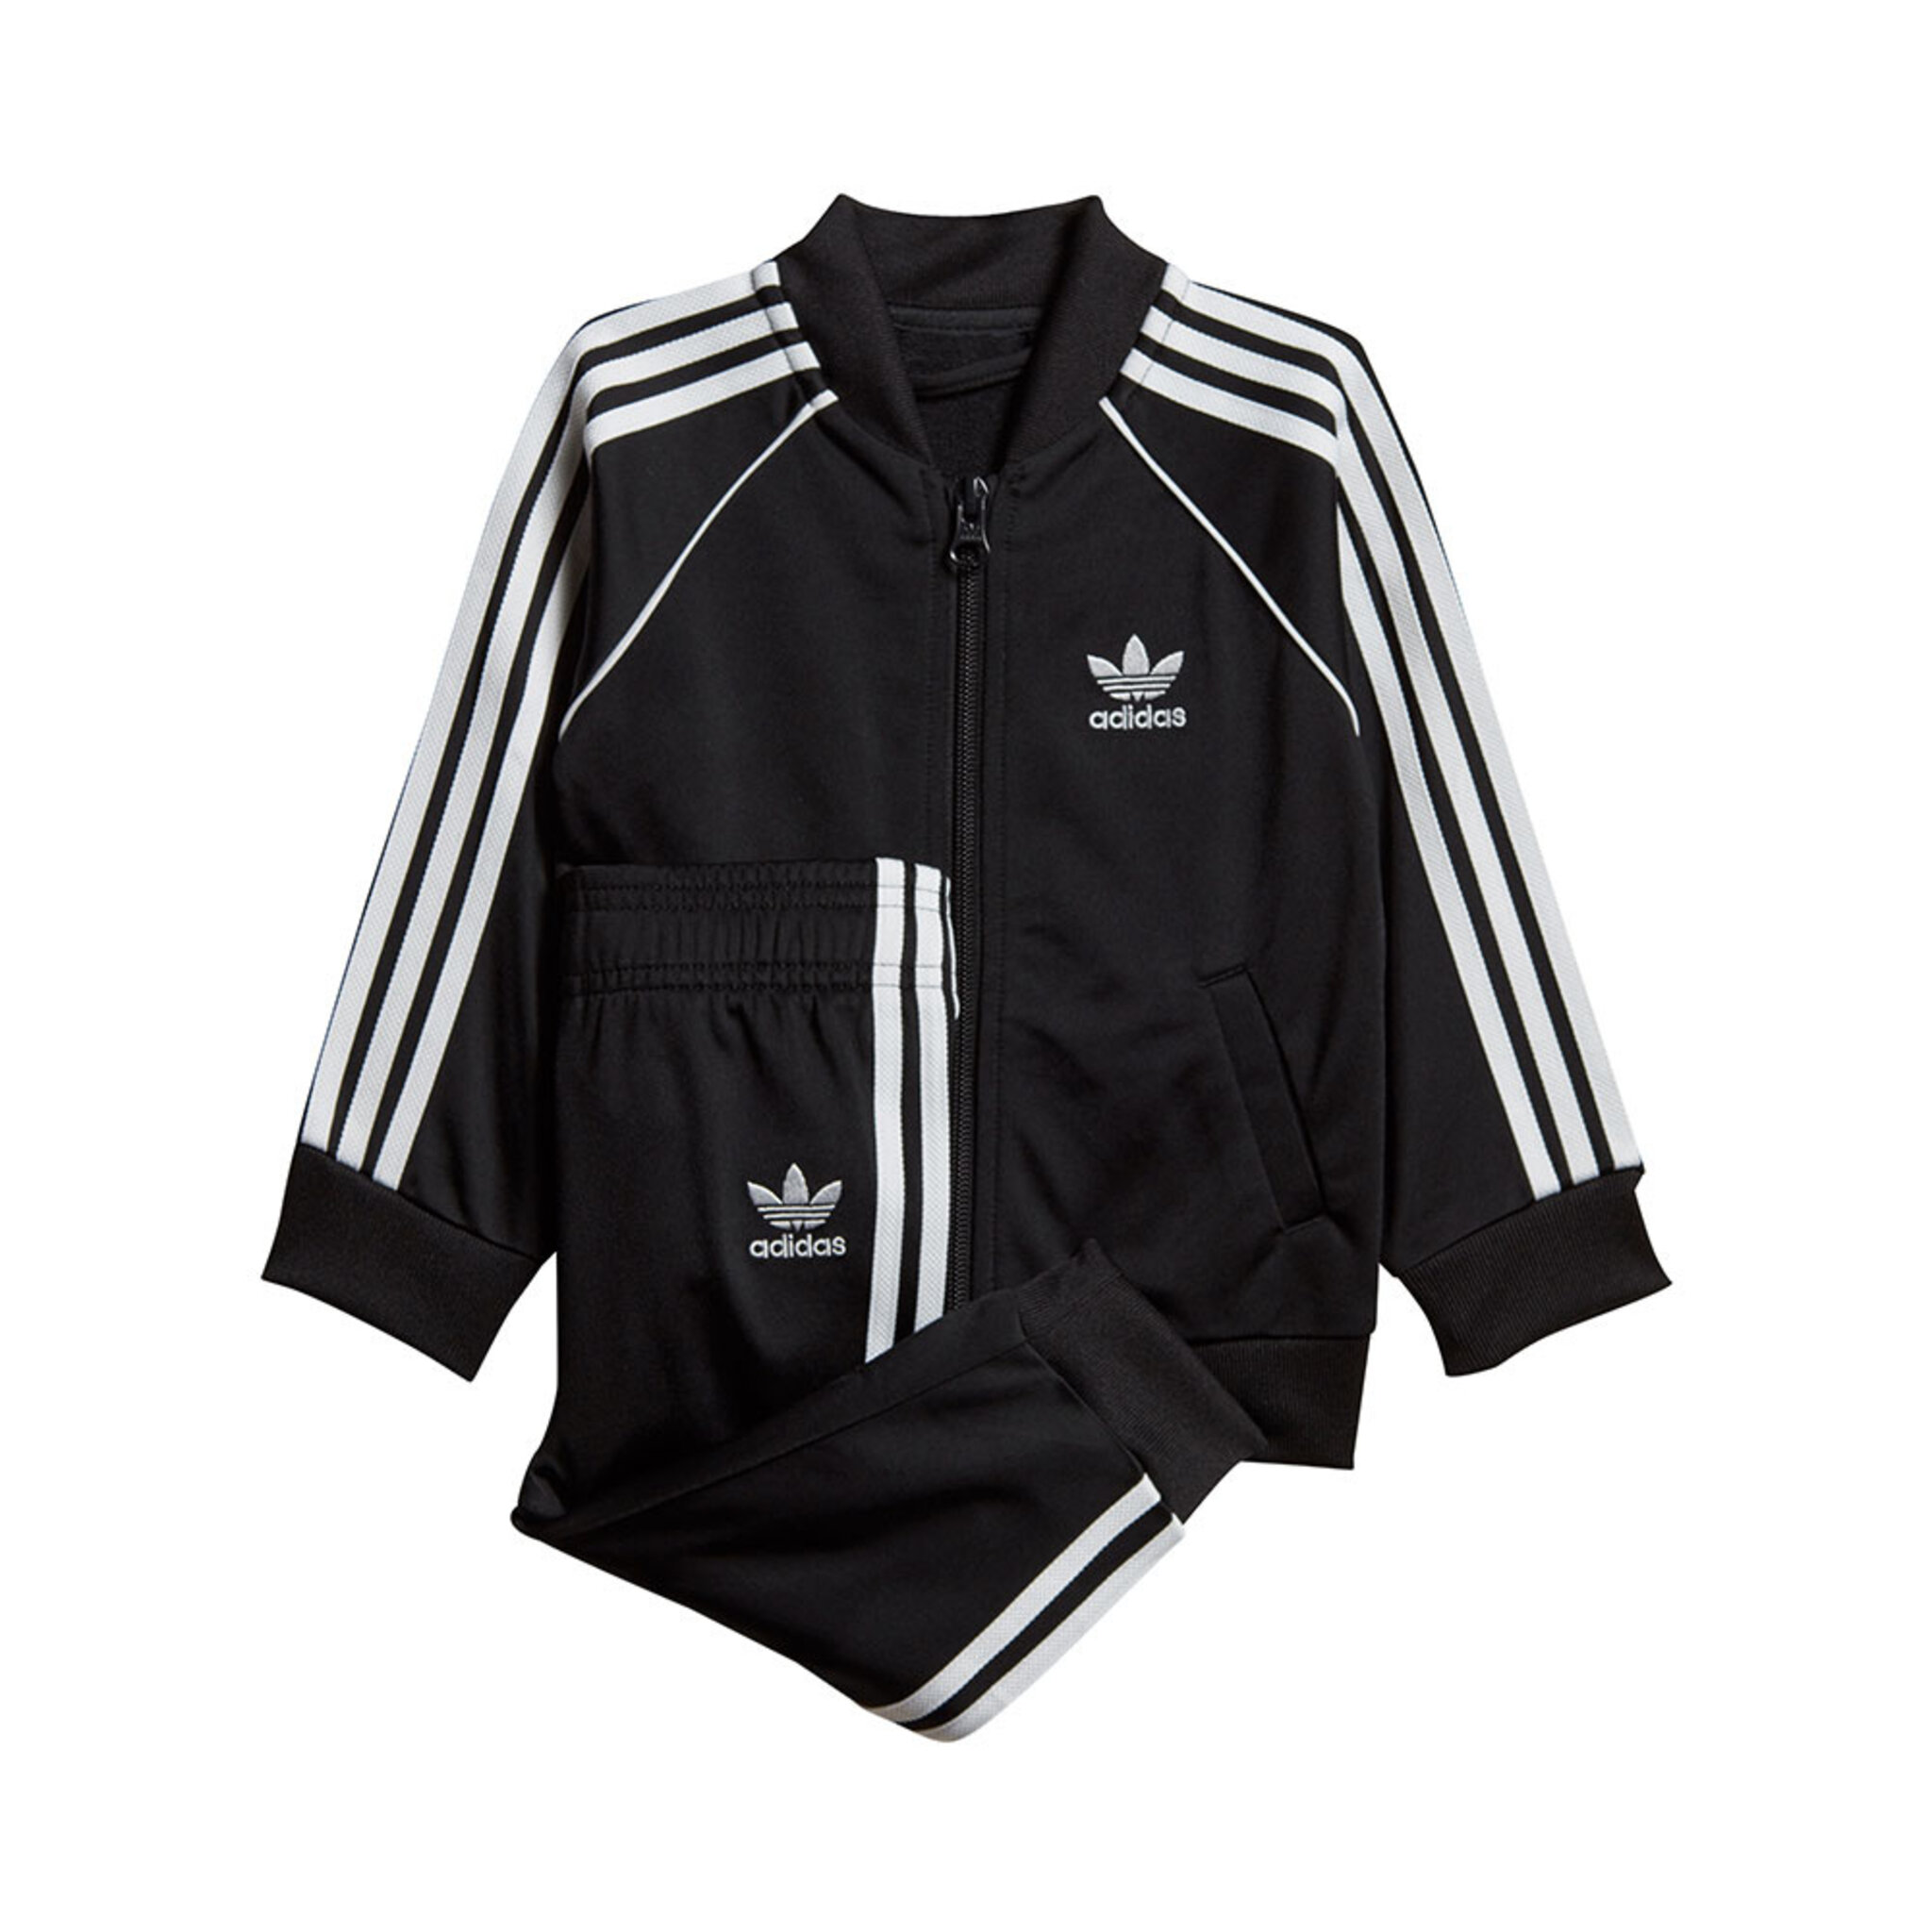 adidas Mini Rodini SST Track Suit (With images)   Kids outfits